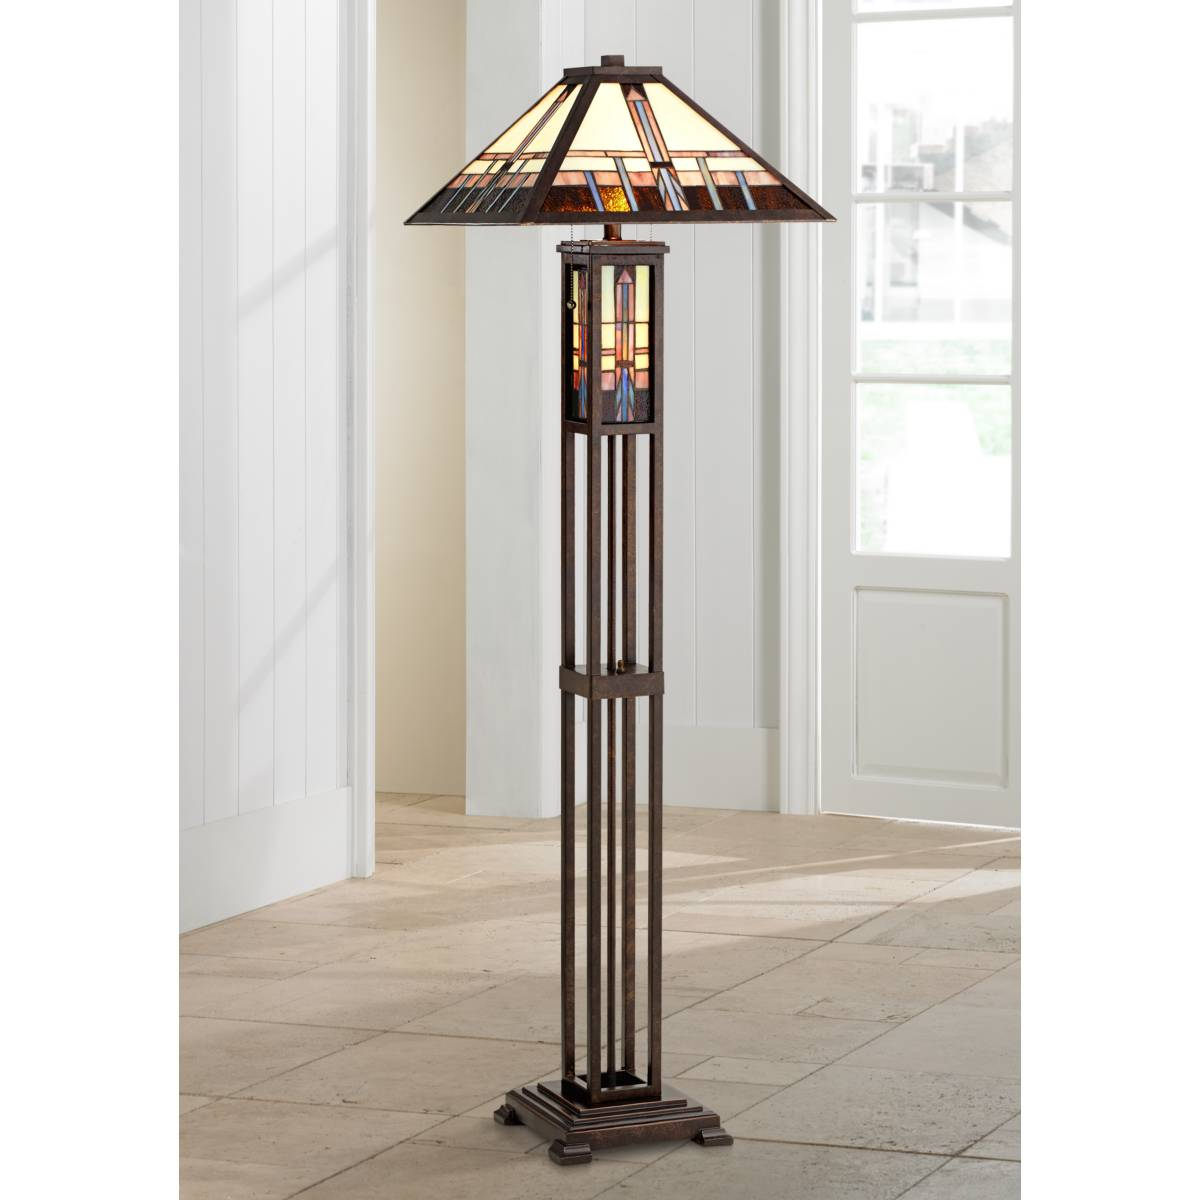 Lights On Sale: Lighting Fixture & Home Furnishings Sale